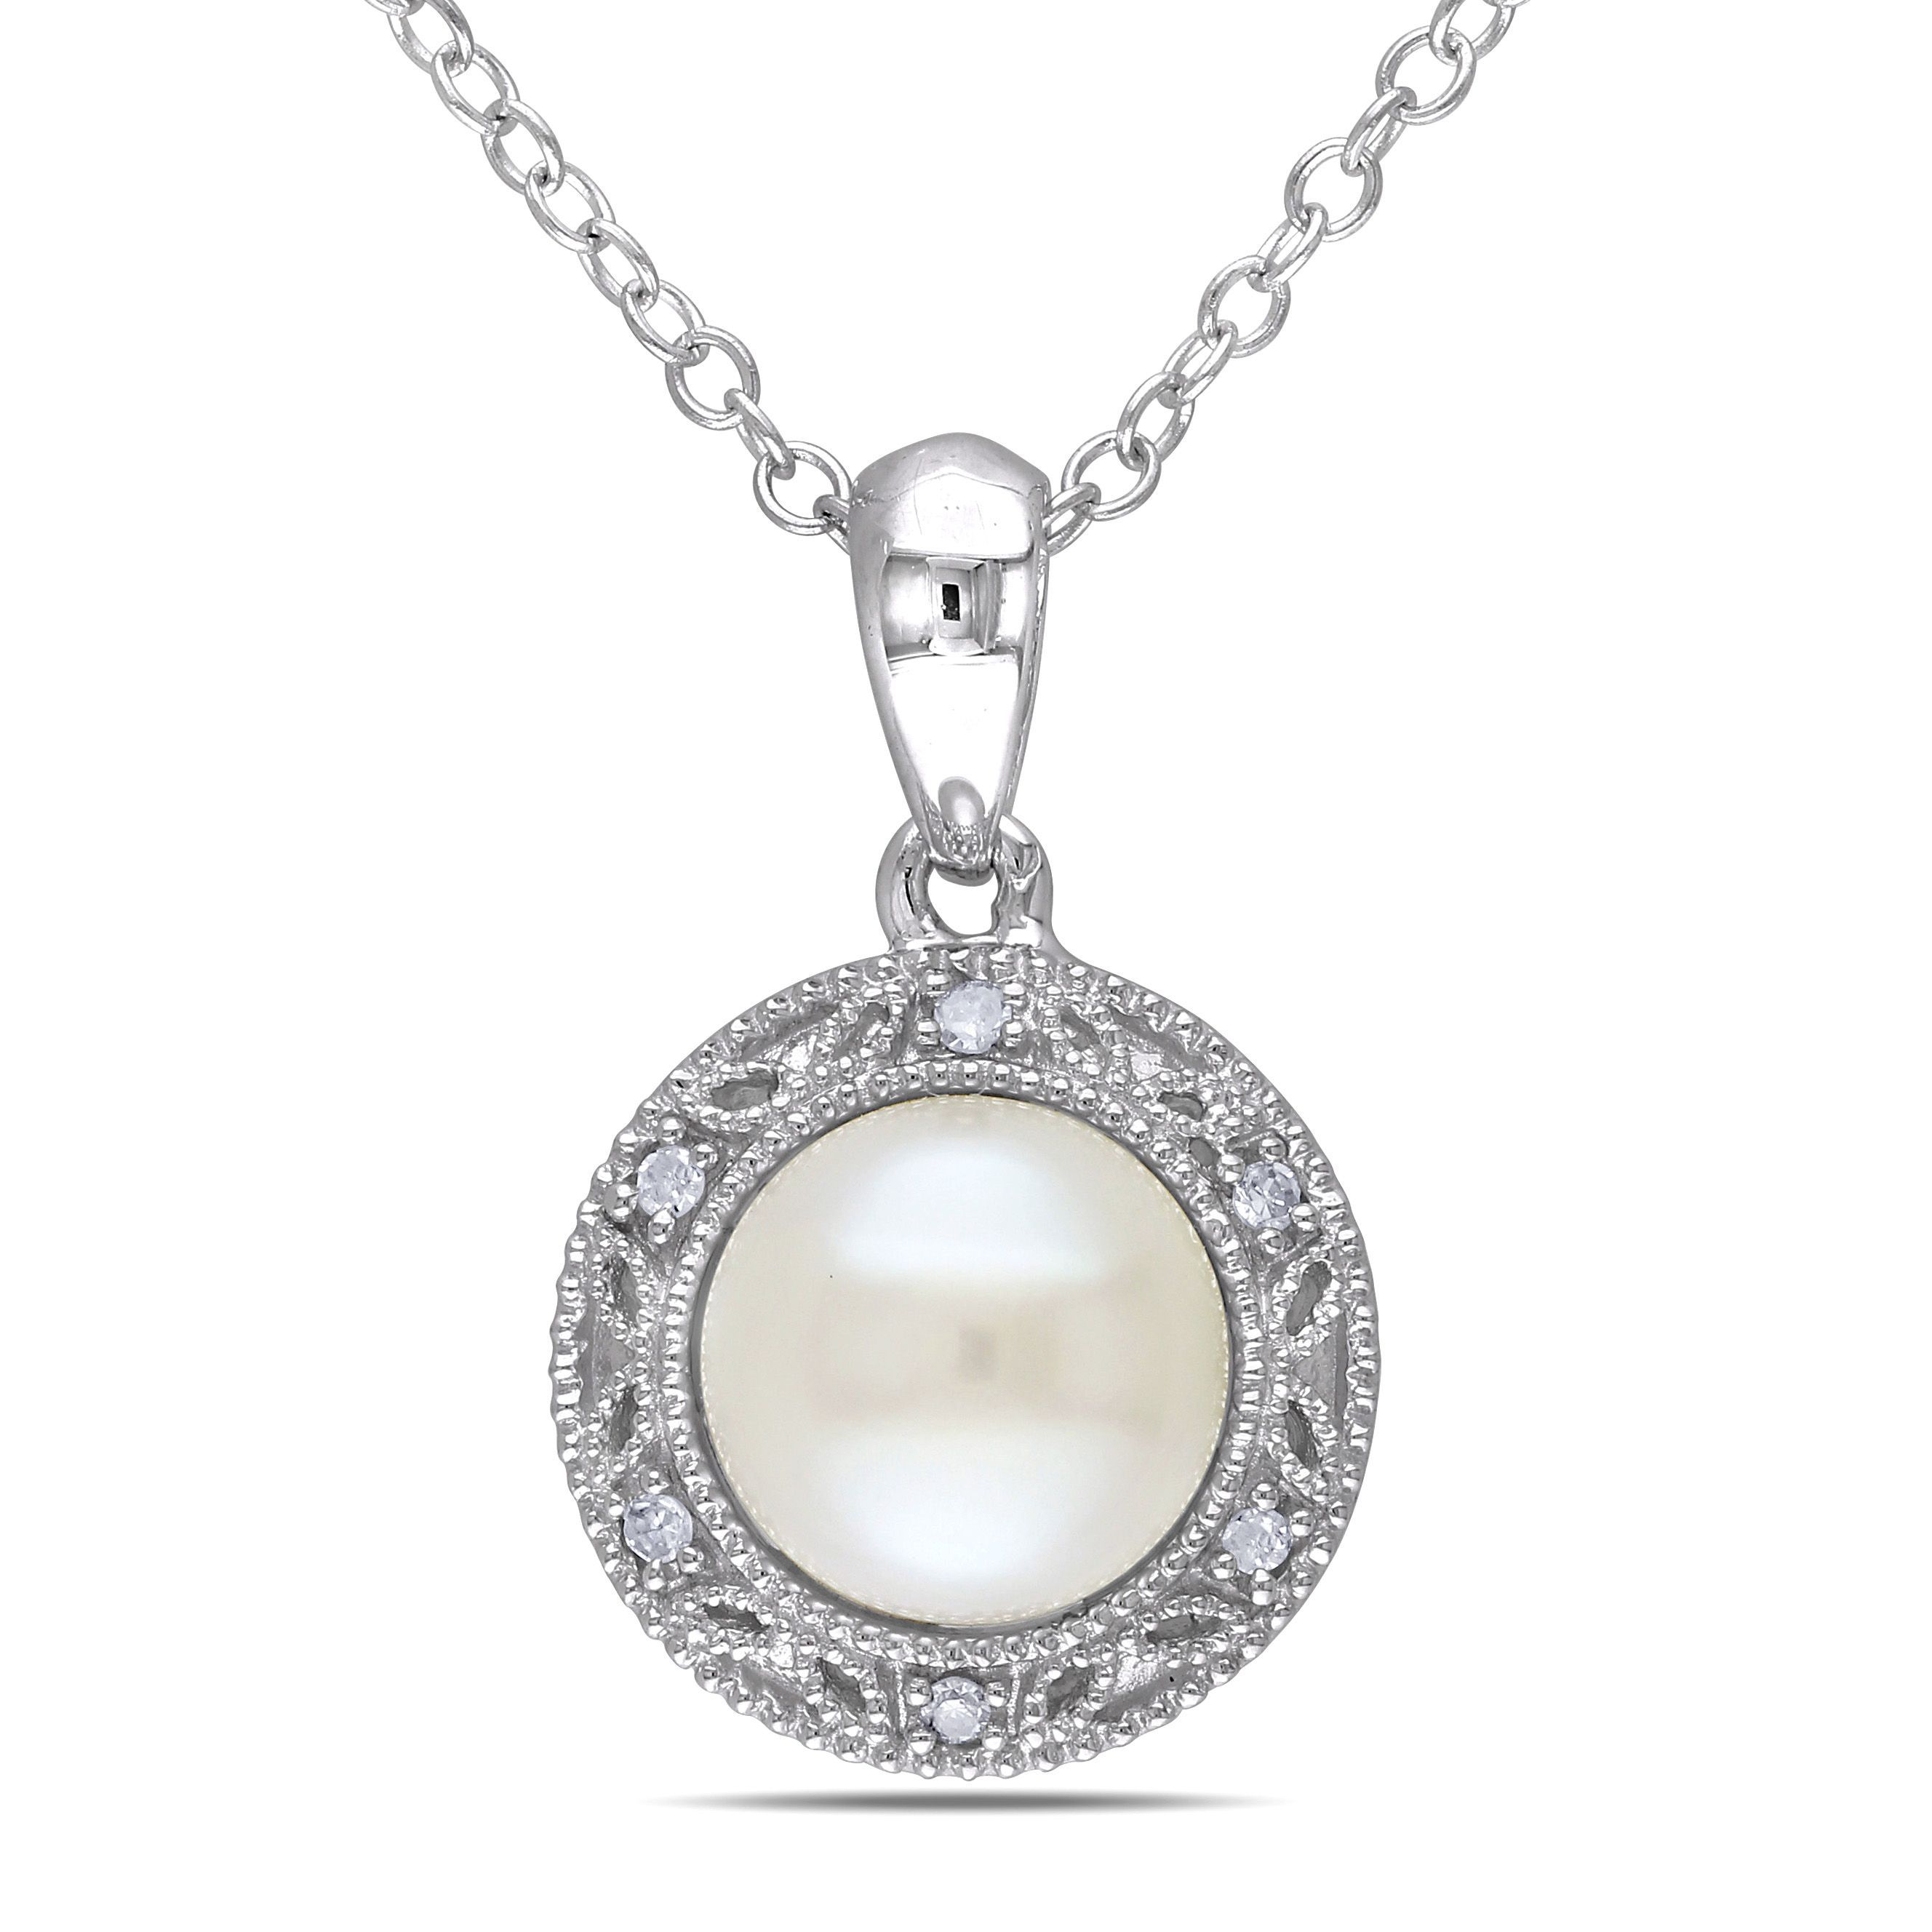 Embrace the traditional look of pearl jewelry with this beautiful